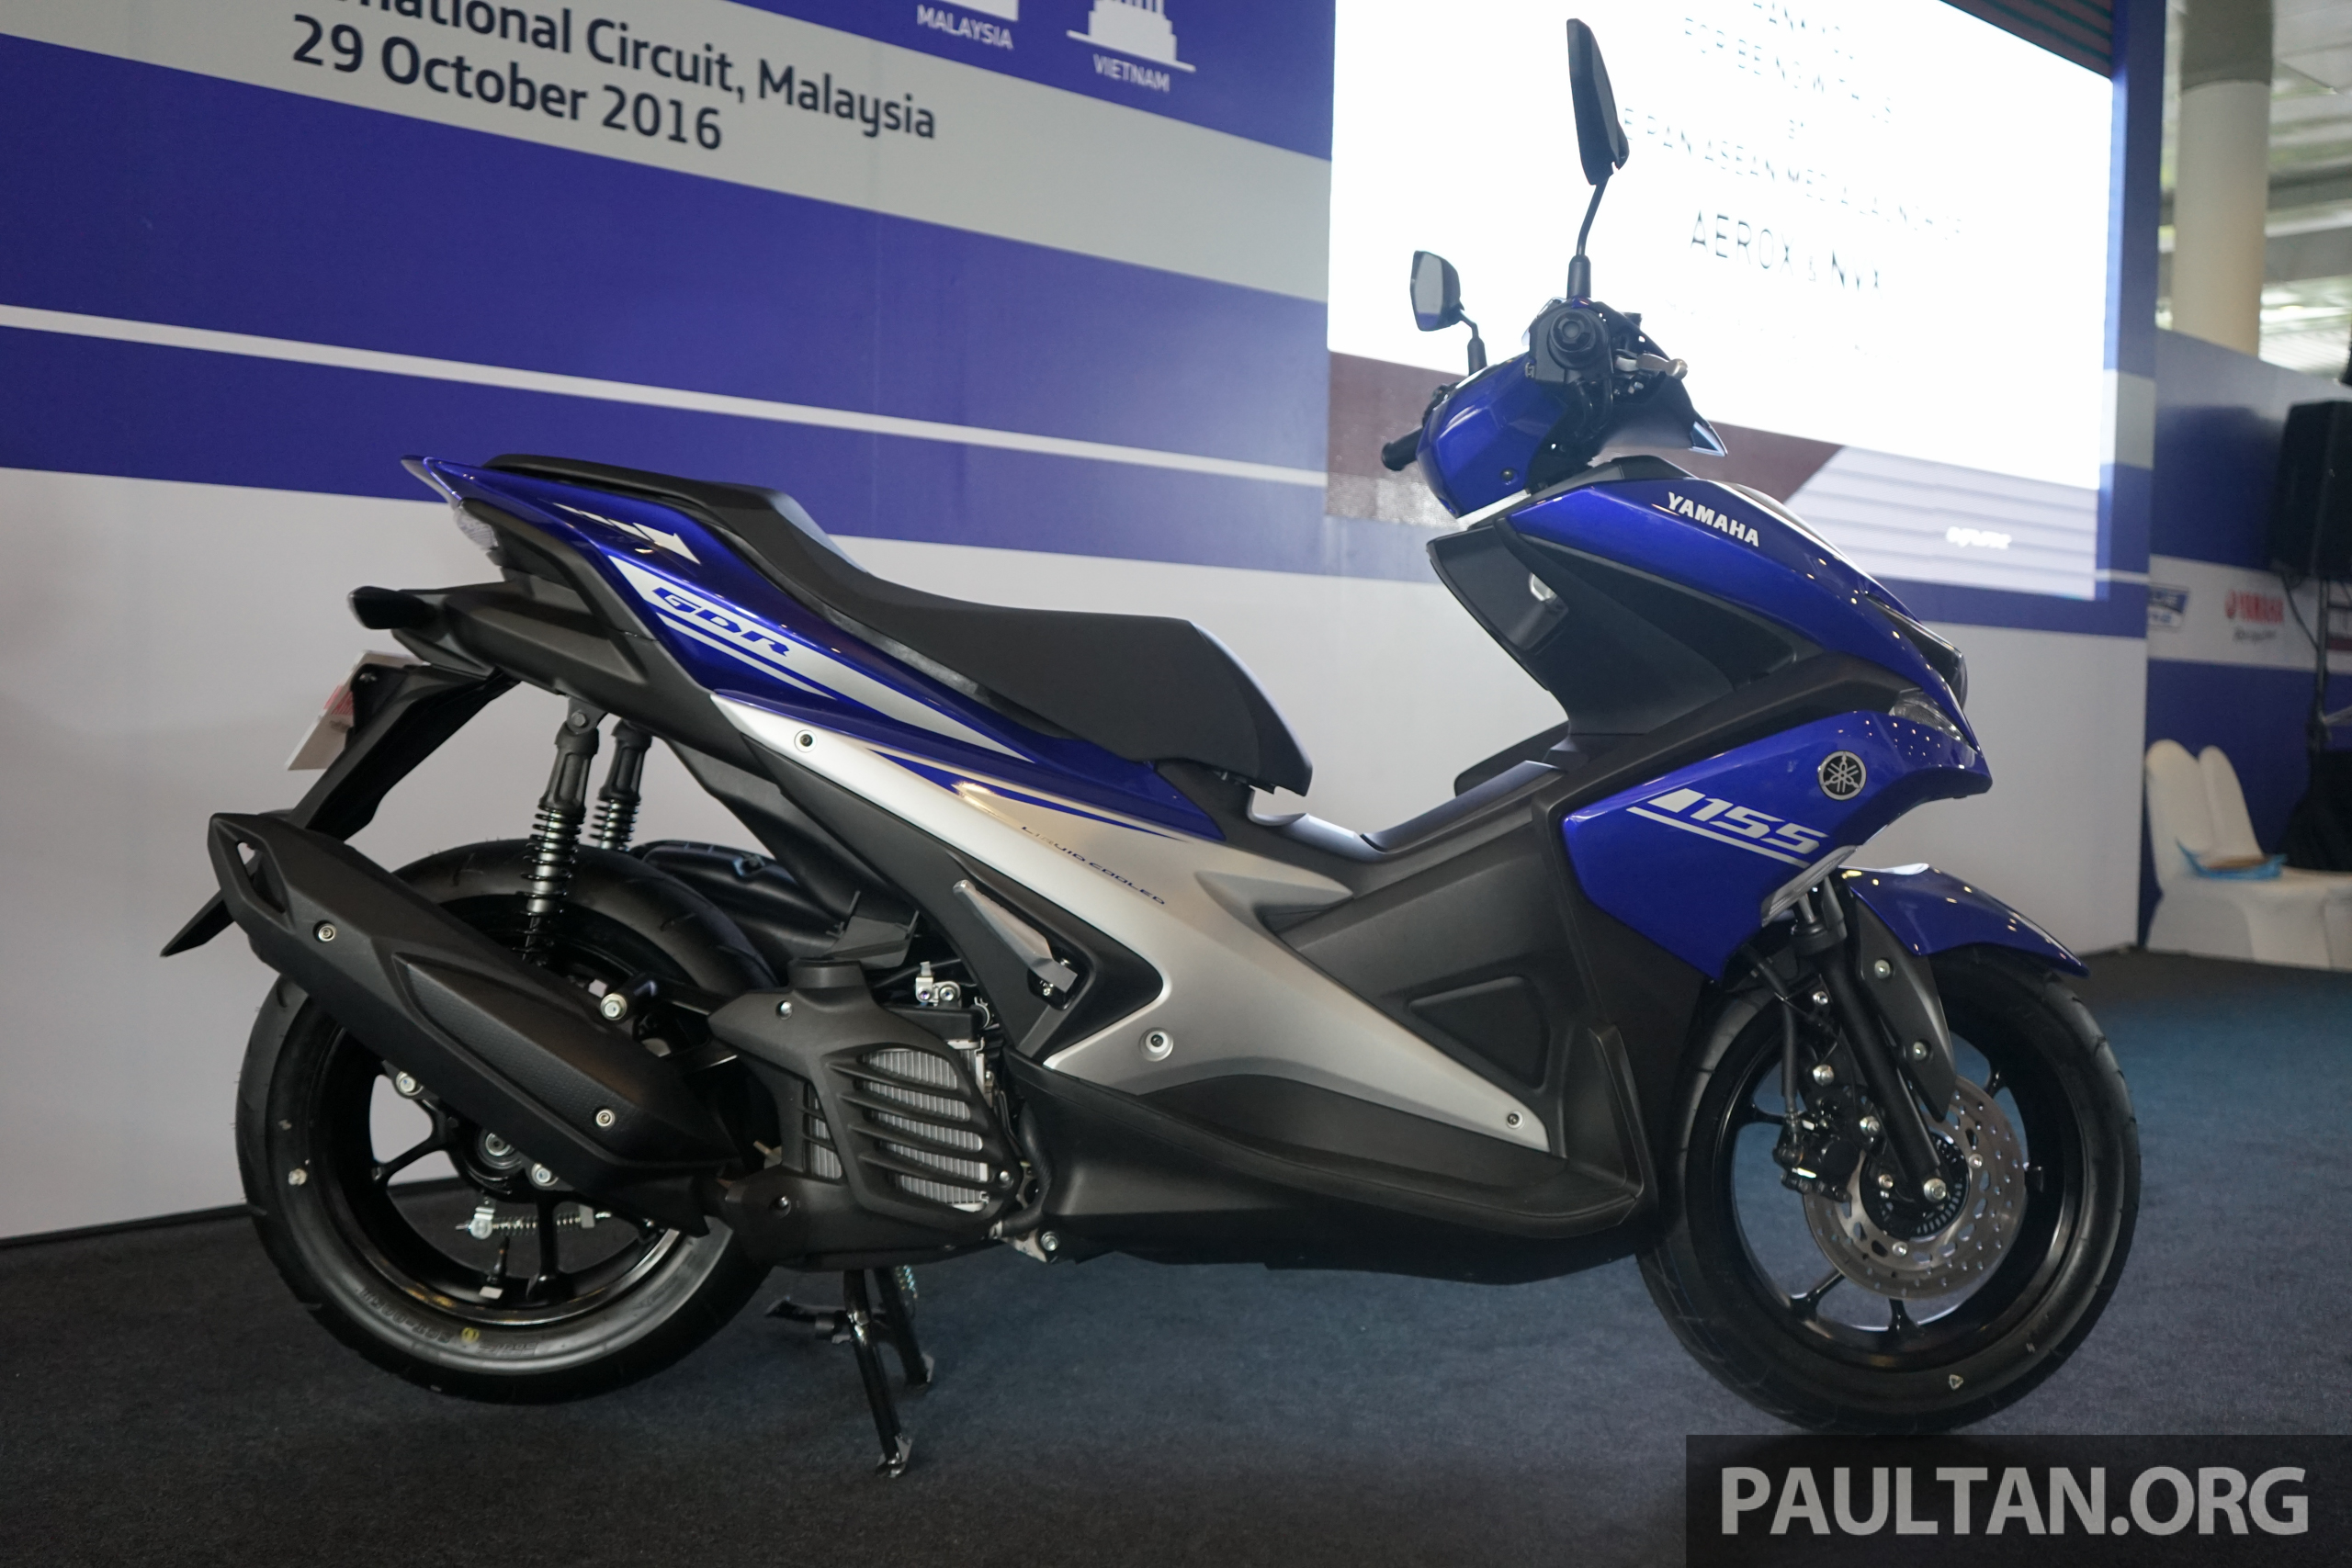 2017 Yamaha NVX Aerox ASEAN Launch At Sepang Paul Tan